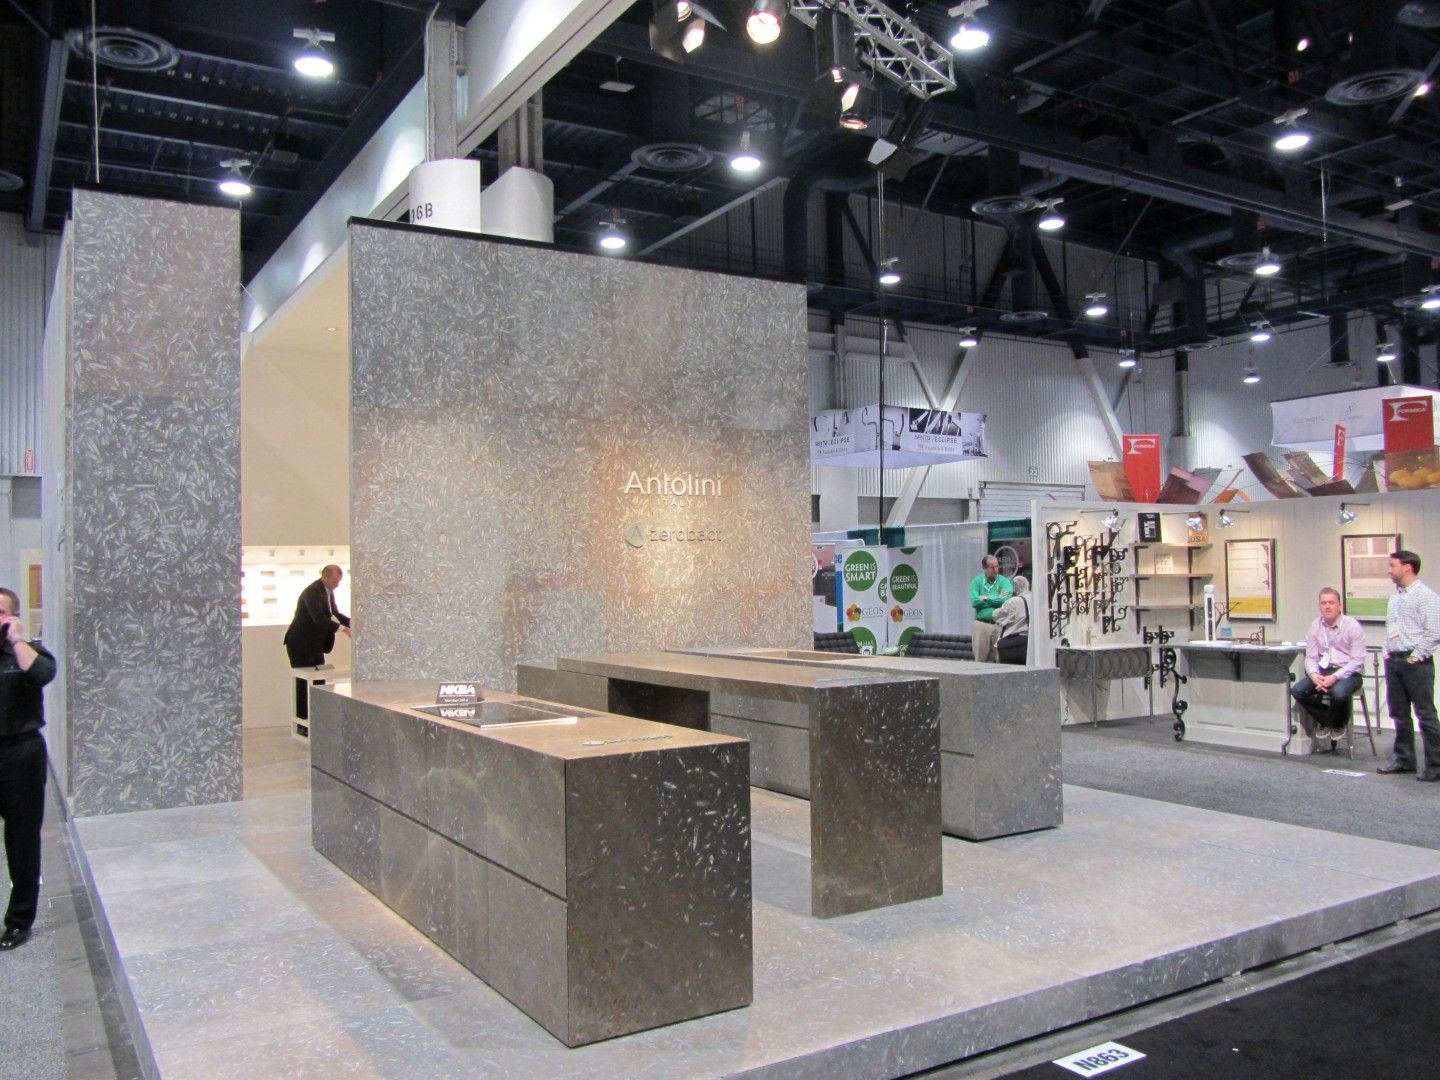 Ordinaire KBIS   Kitchen U0026 Bath Industry Show Las Vegas   USA Il Nostro Stand A KBIS  2014 Our Booth At KBIS 2014 #antolini #KBSI #Azerobact #Jurassiccollection